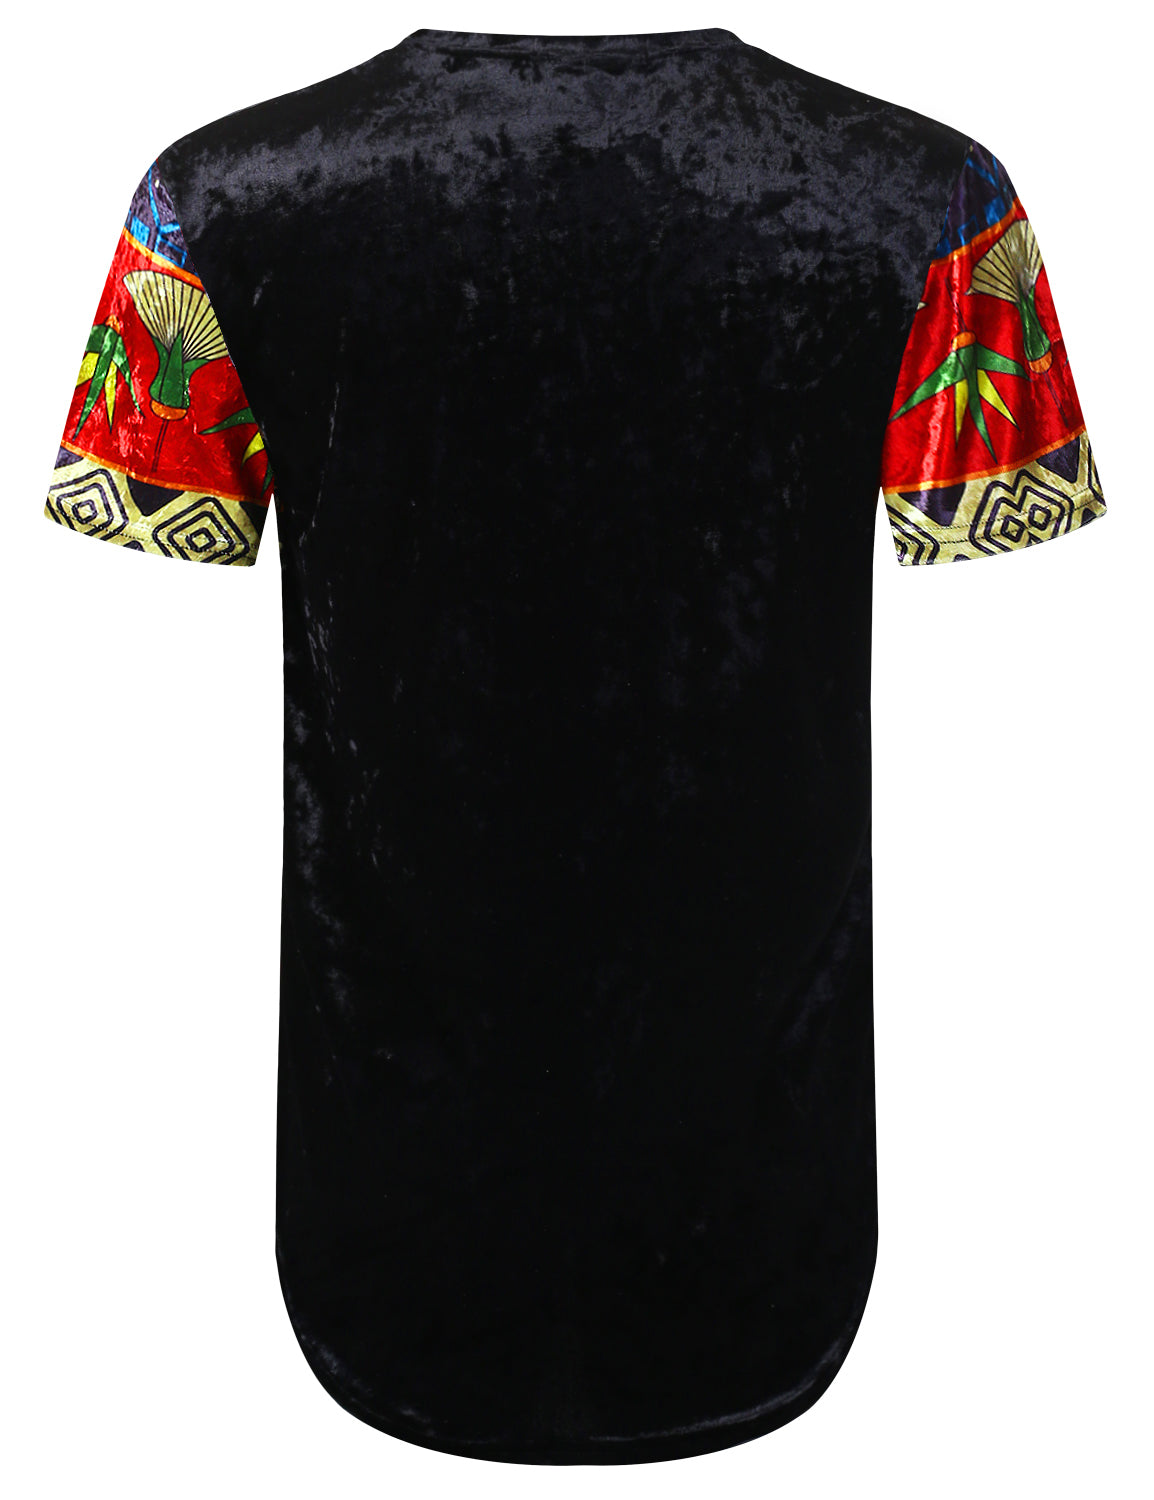 BLACK Ancient Egypt Crushed Velvet T-shirt - URBANCREWS